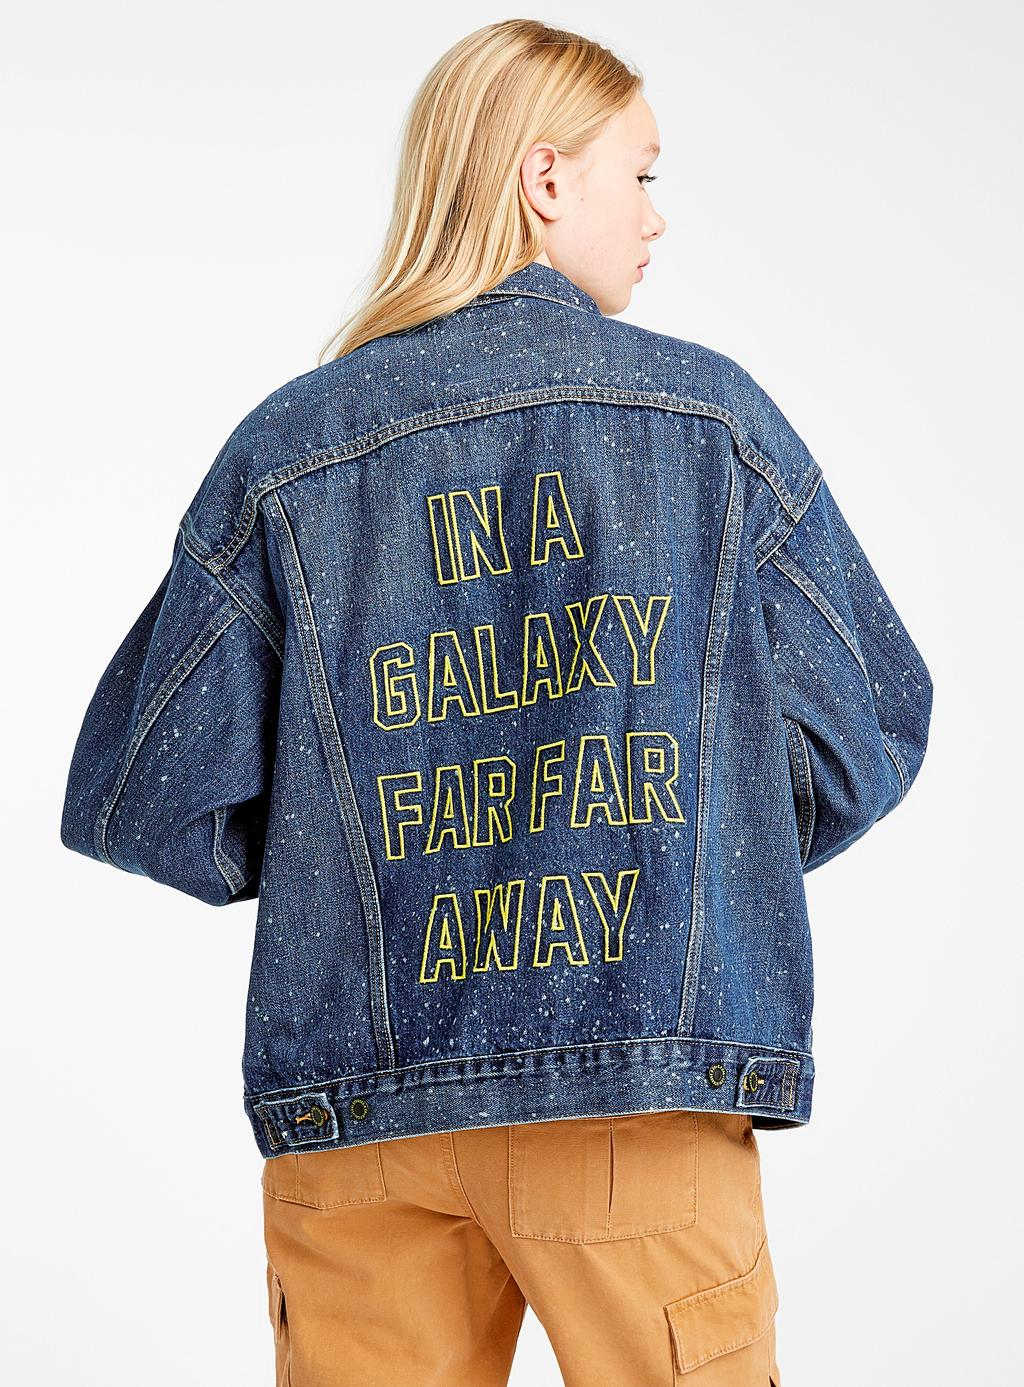 Veste de jeans de la collection Star Wars, 148 $ chez Simons.